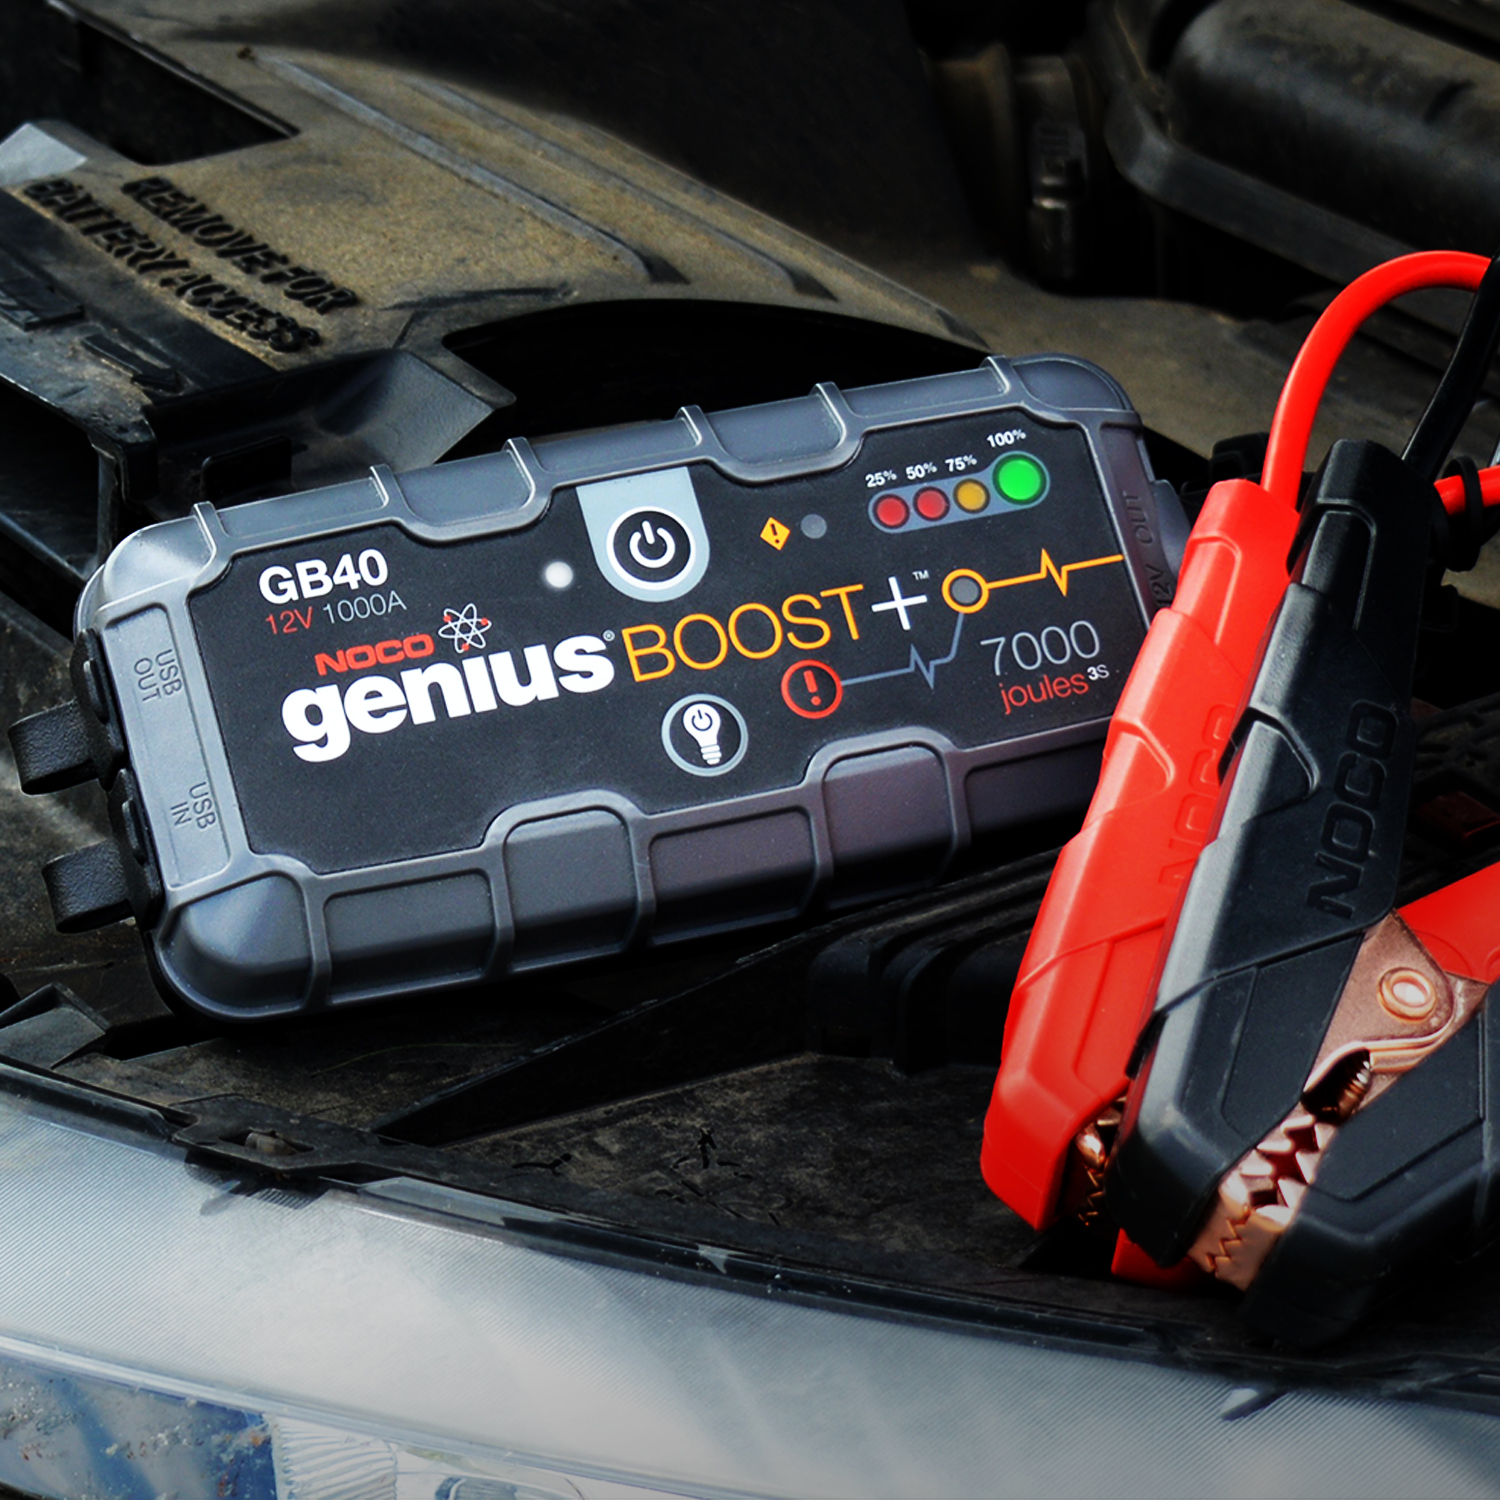 The All New Emergency Lithium Ion Car Battery Jump Starter and Portable Power Bank Booster Pack.